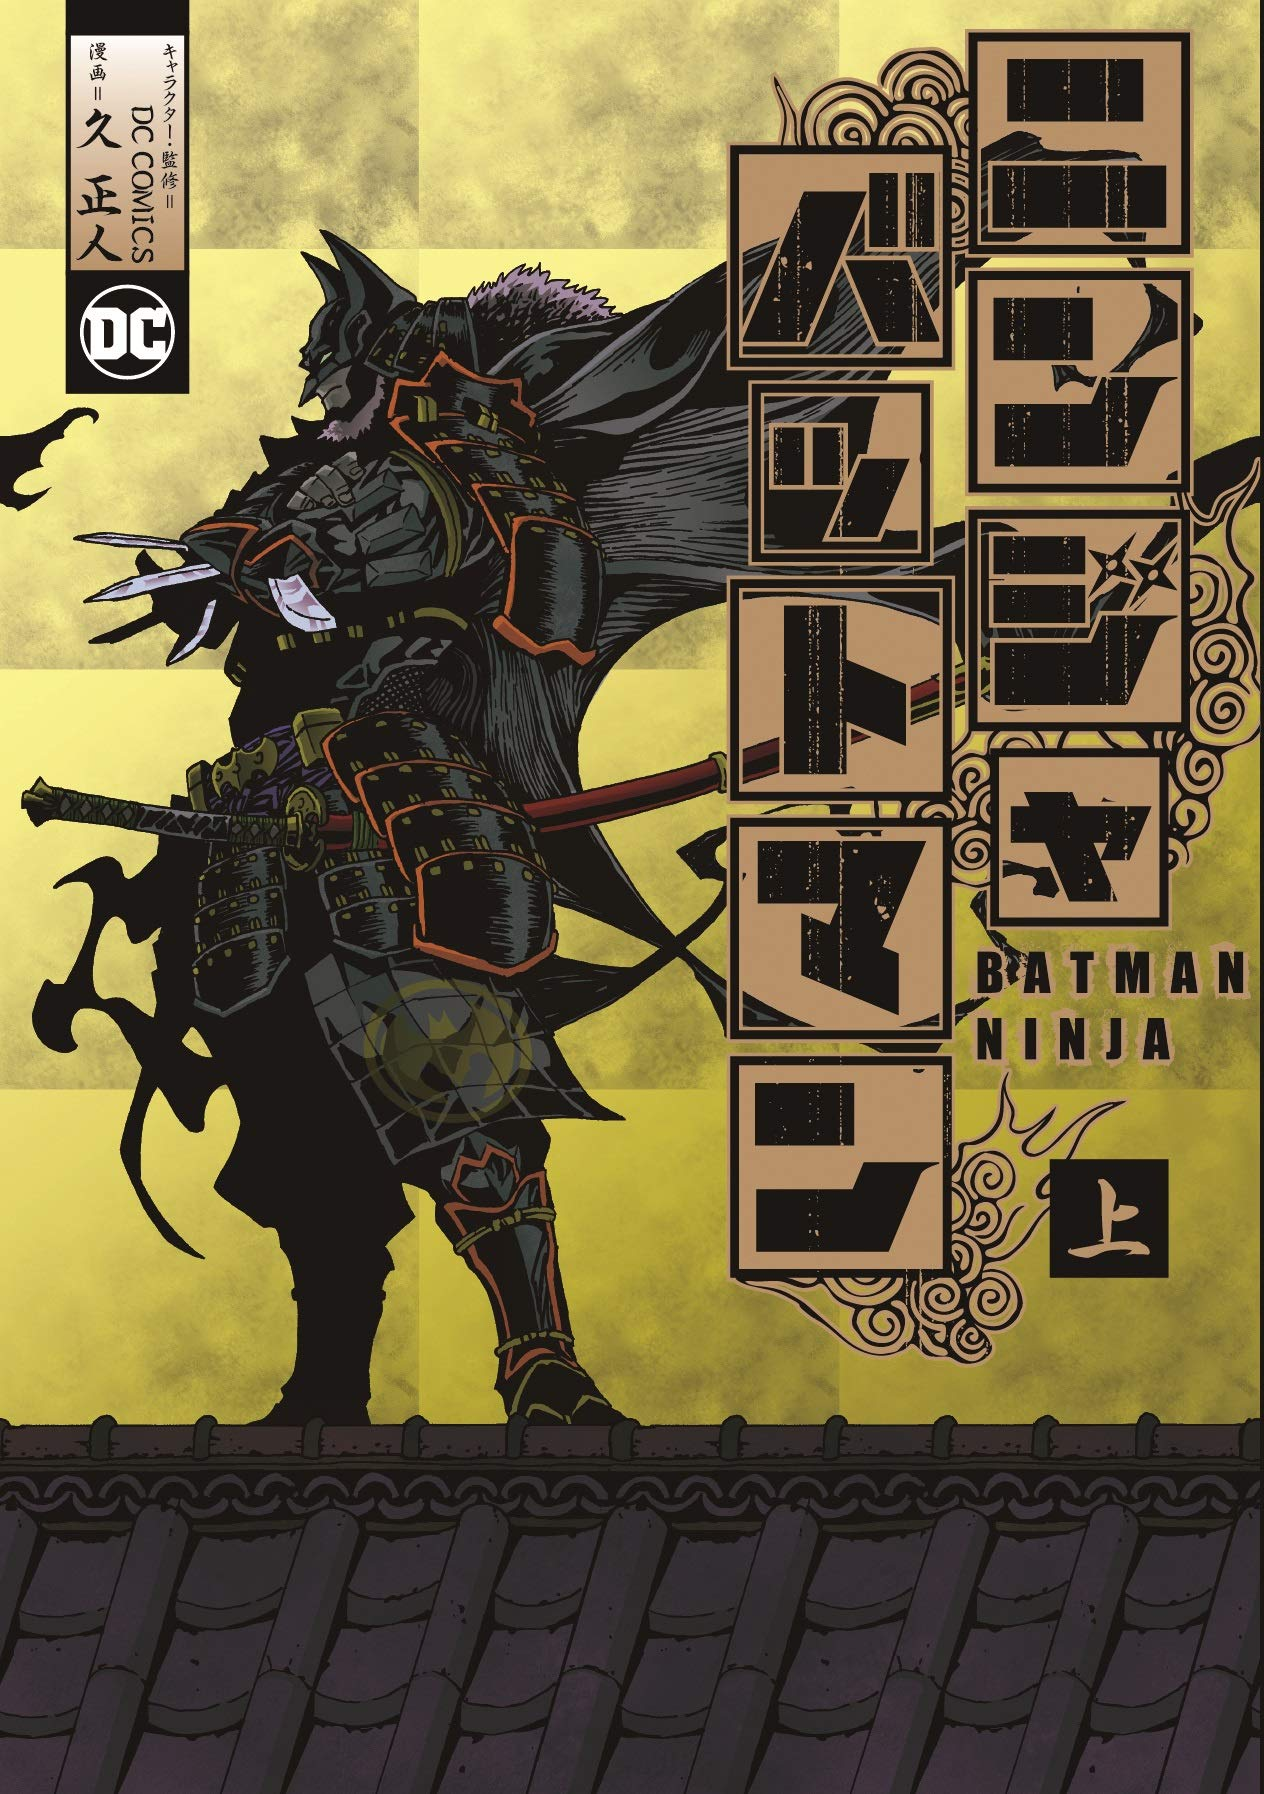 Batman Ninja first volume (Heroes Comics): Masato Hisa ...